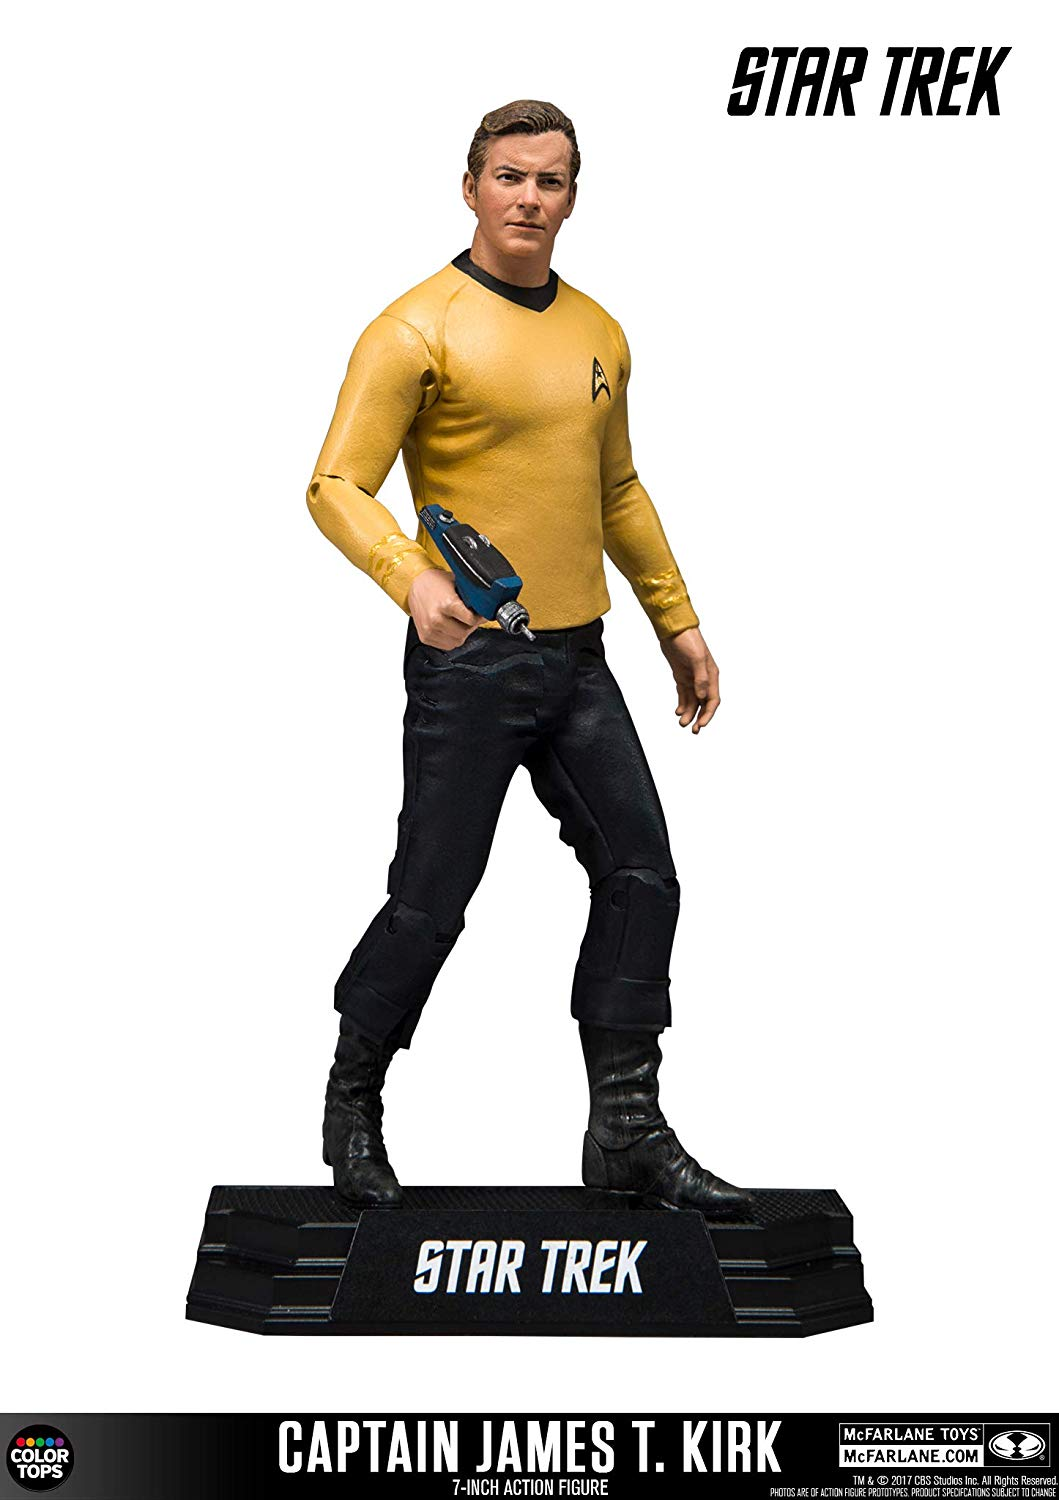 McFarlane Star Trek Captain James T. Kirk Collectible 7